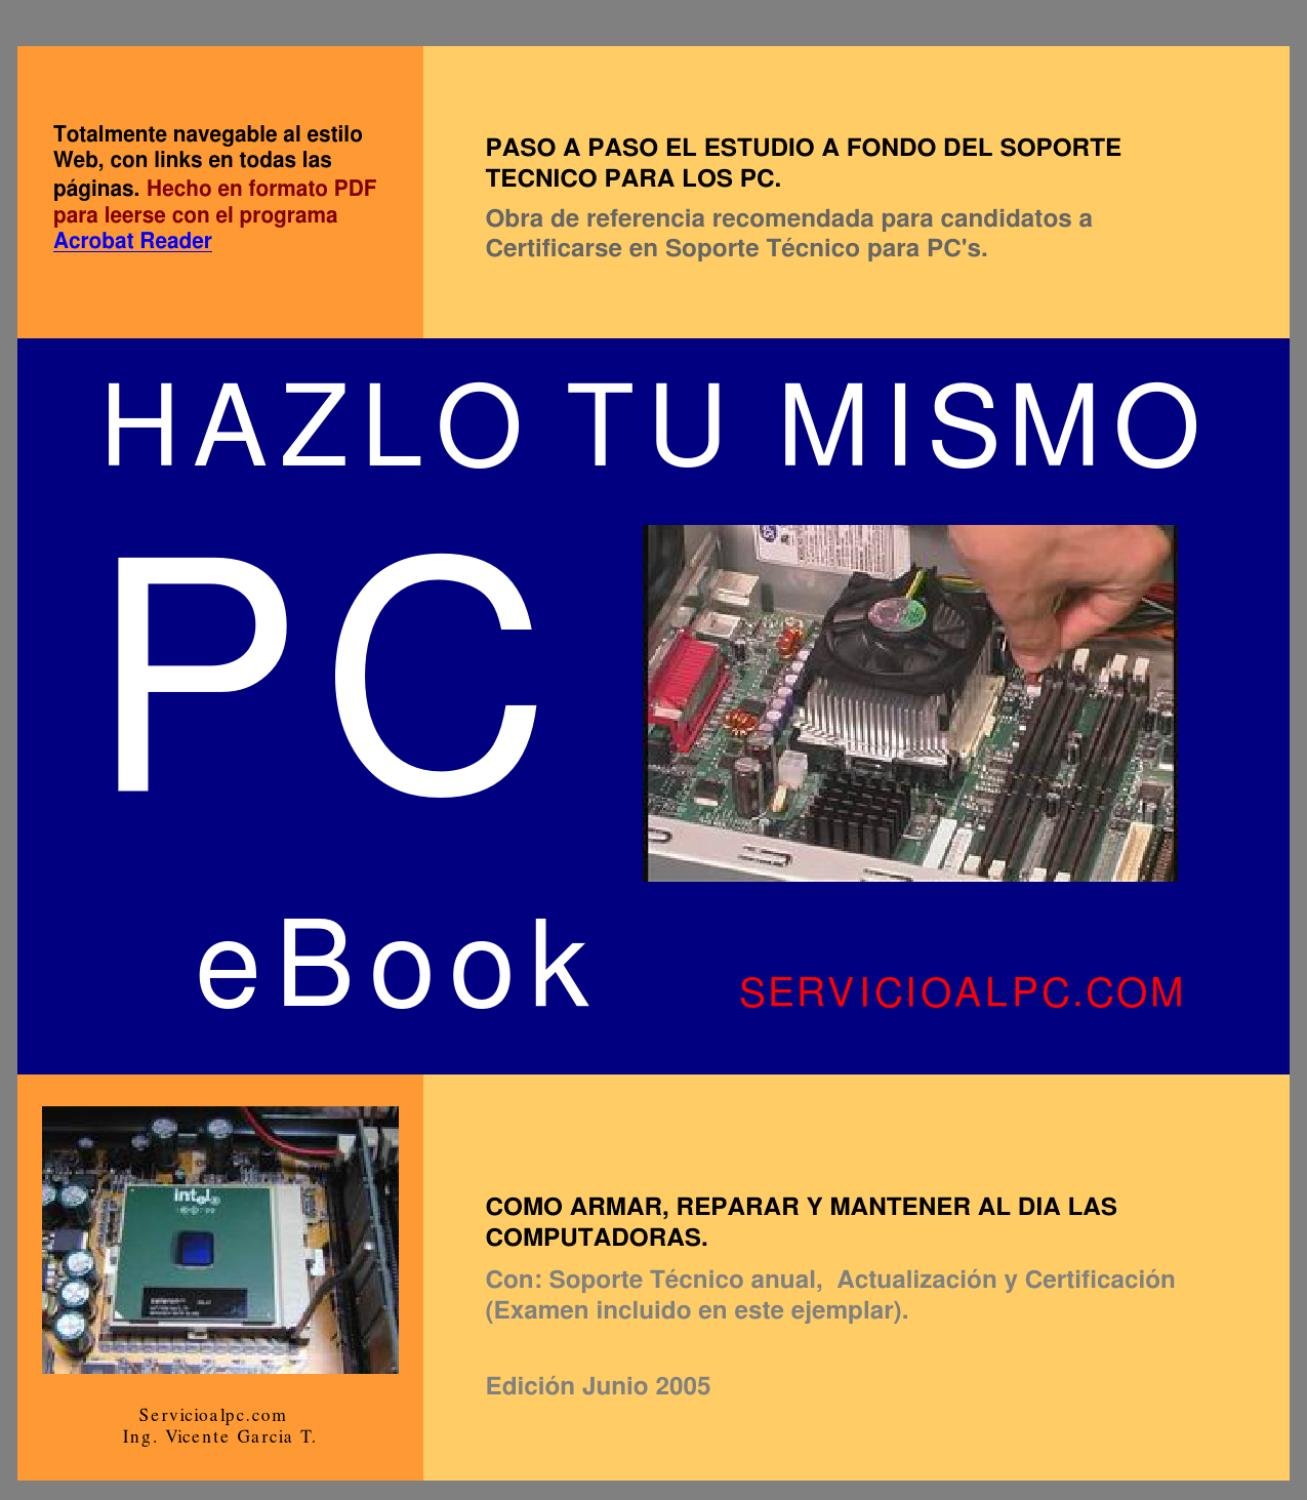 Tutorial de una pc by maykol huaylinos escalante issuu for Regalo roba